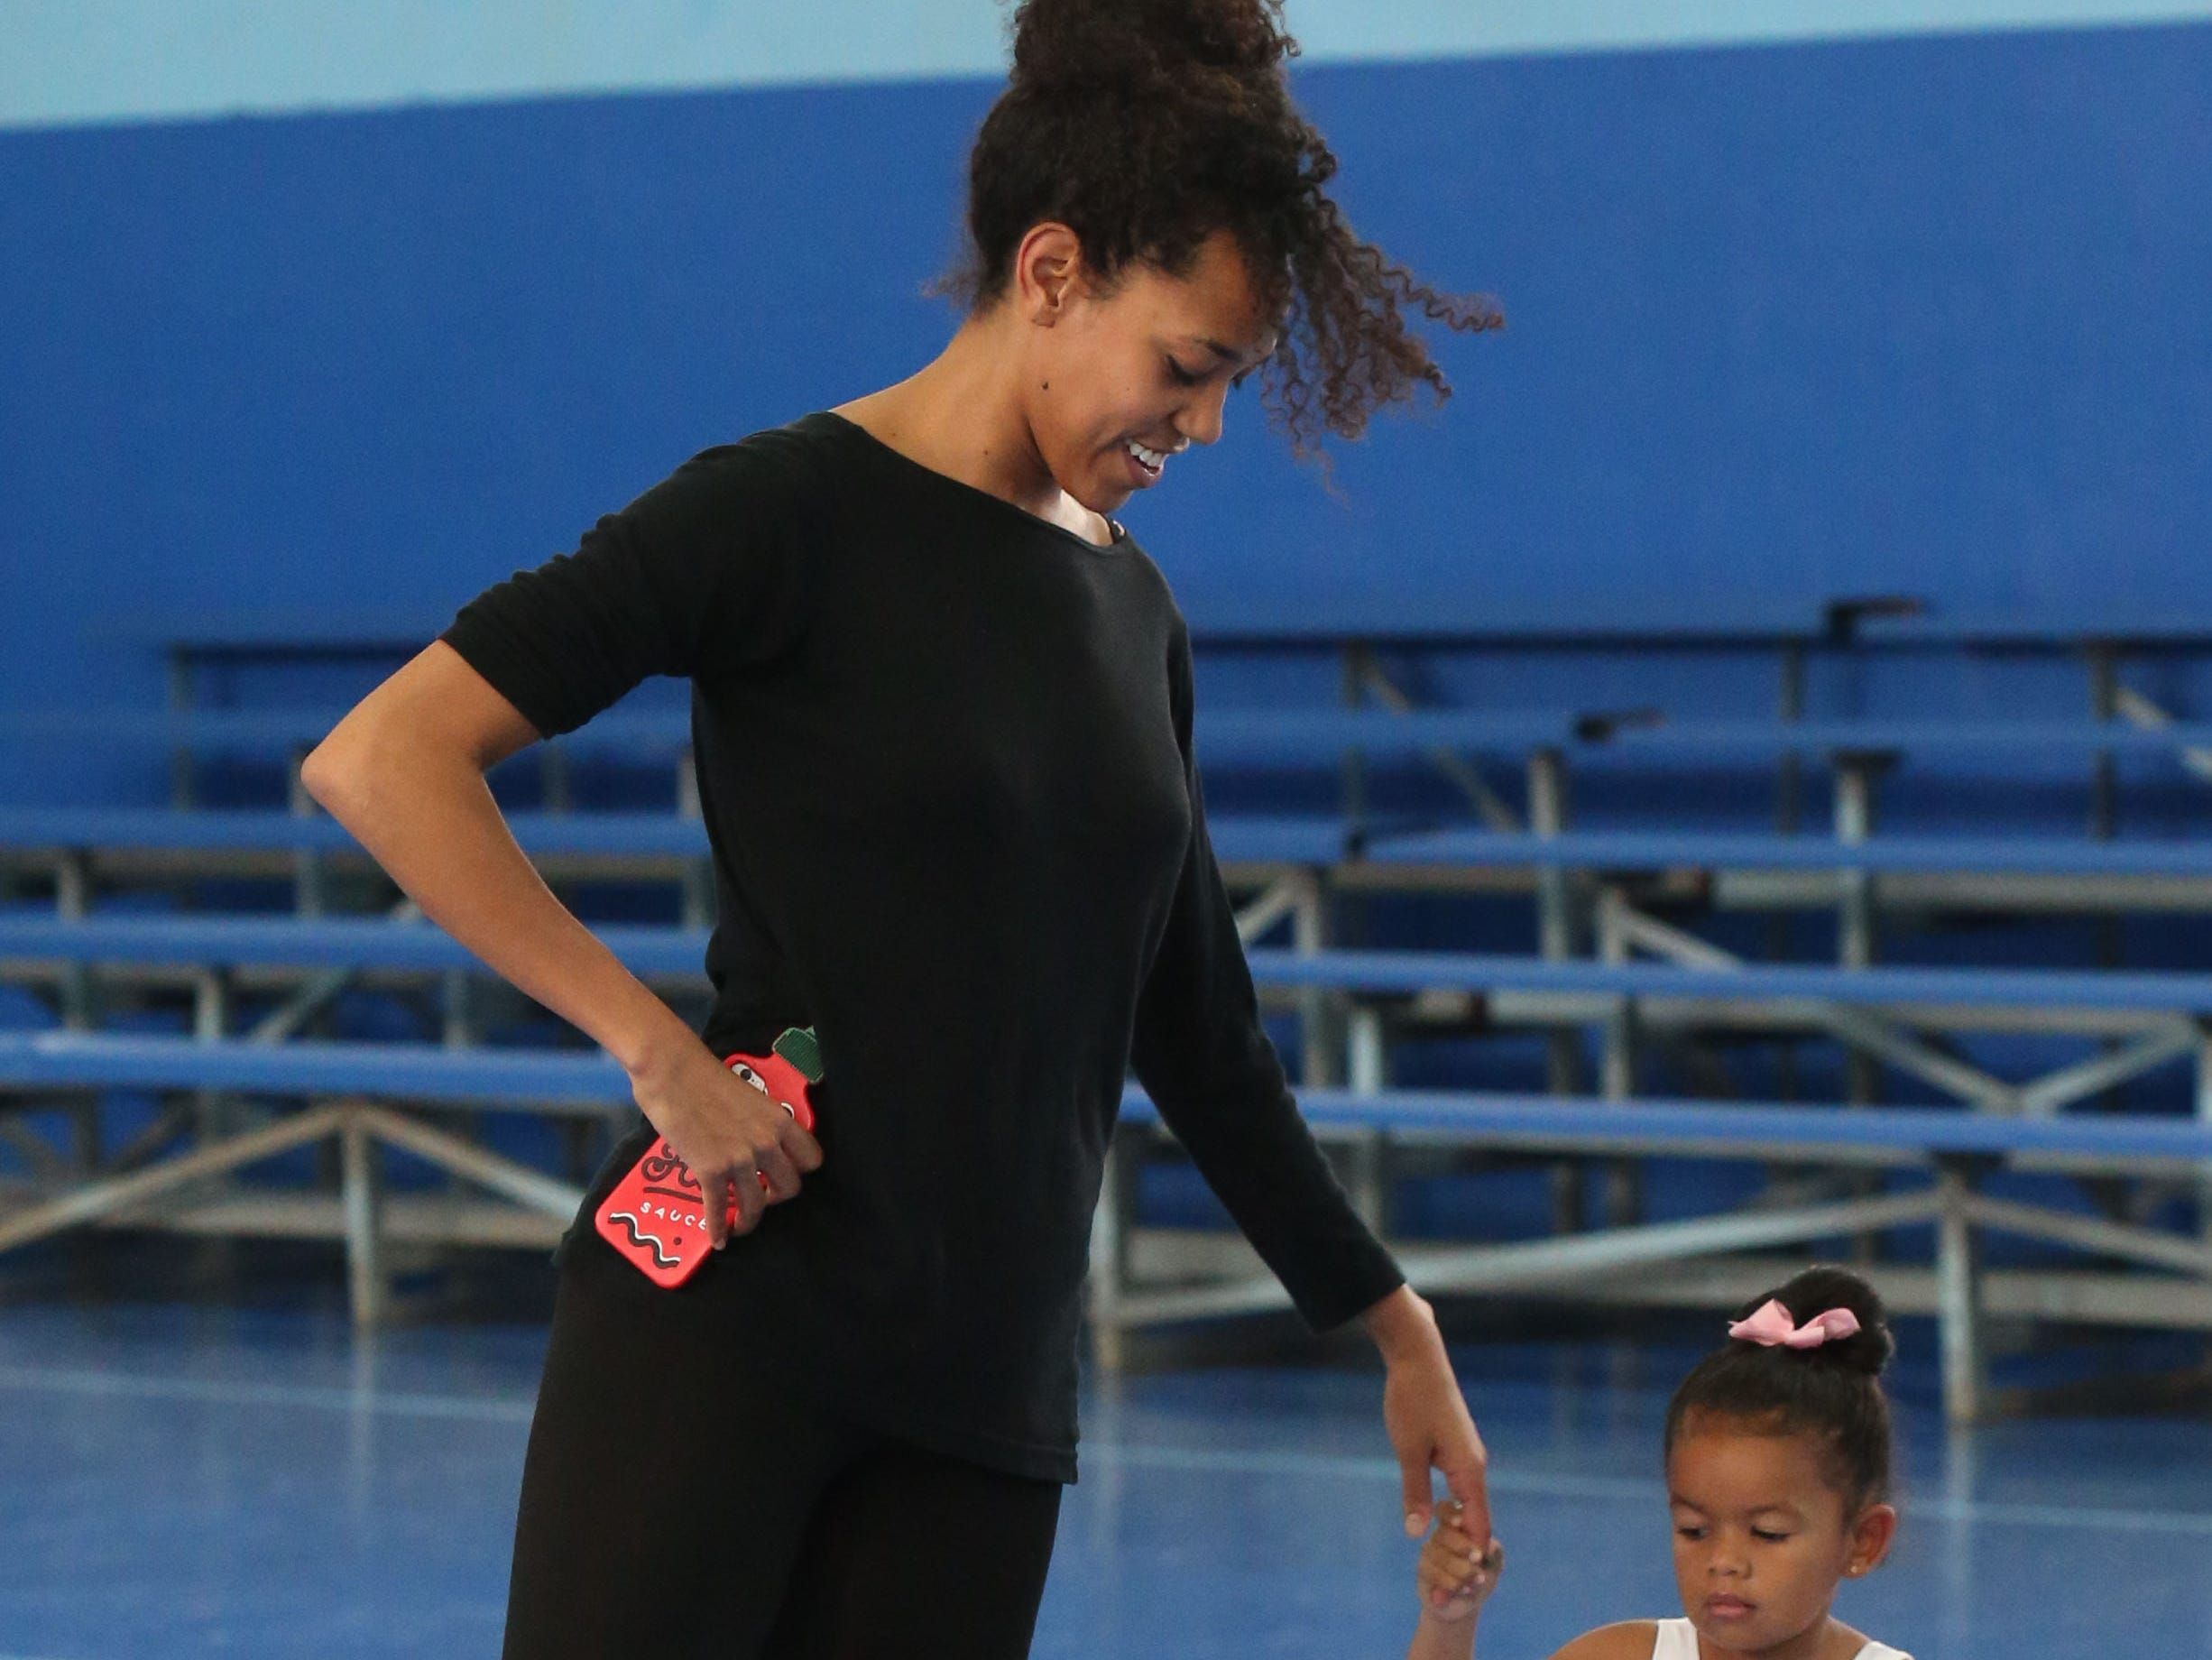 Lindsey Croop, a dancer from the School of Dance in Harlem, teaches Gabriela Young, 3, ballet at a dance class in Quincy, Fla., Saturday, Dec. 8, 2018.